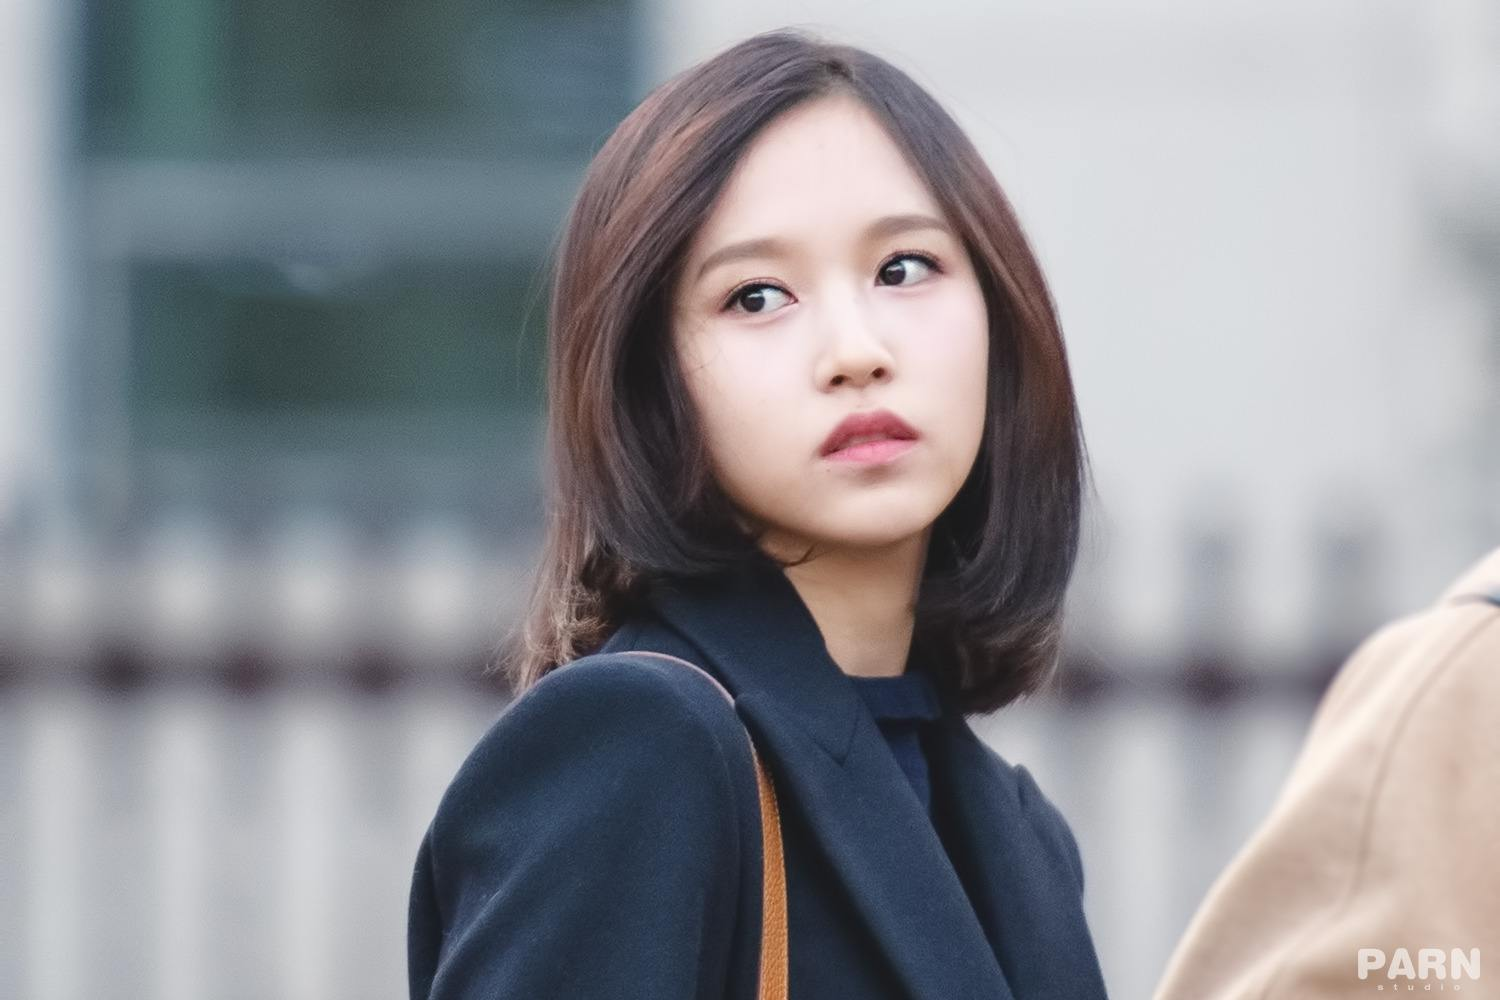 Oblivious Fans Walked Right Past Twice Mina While